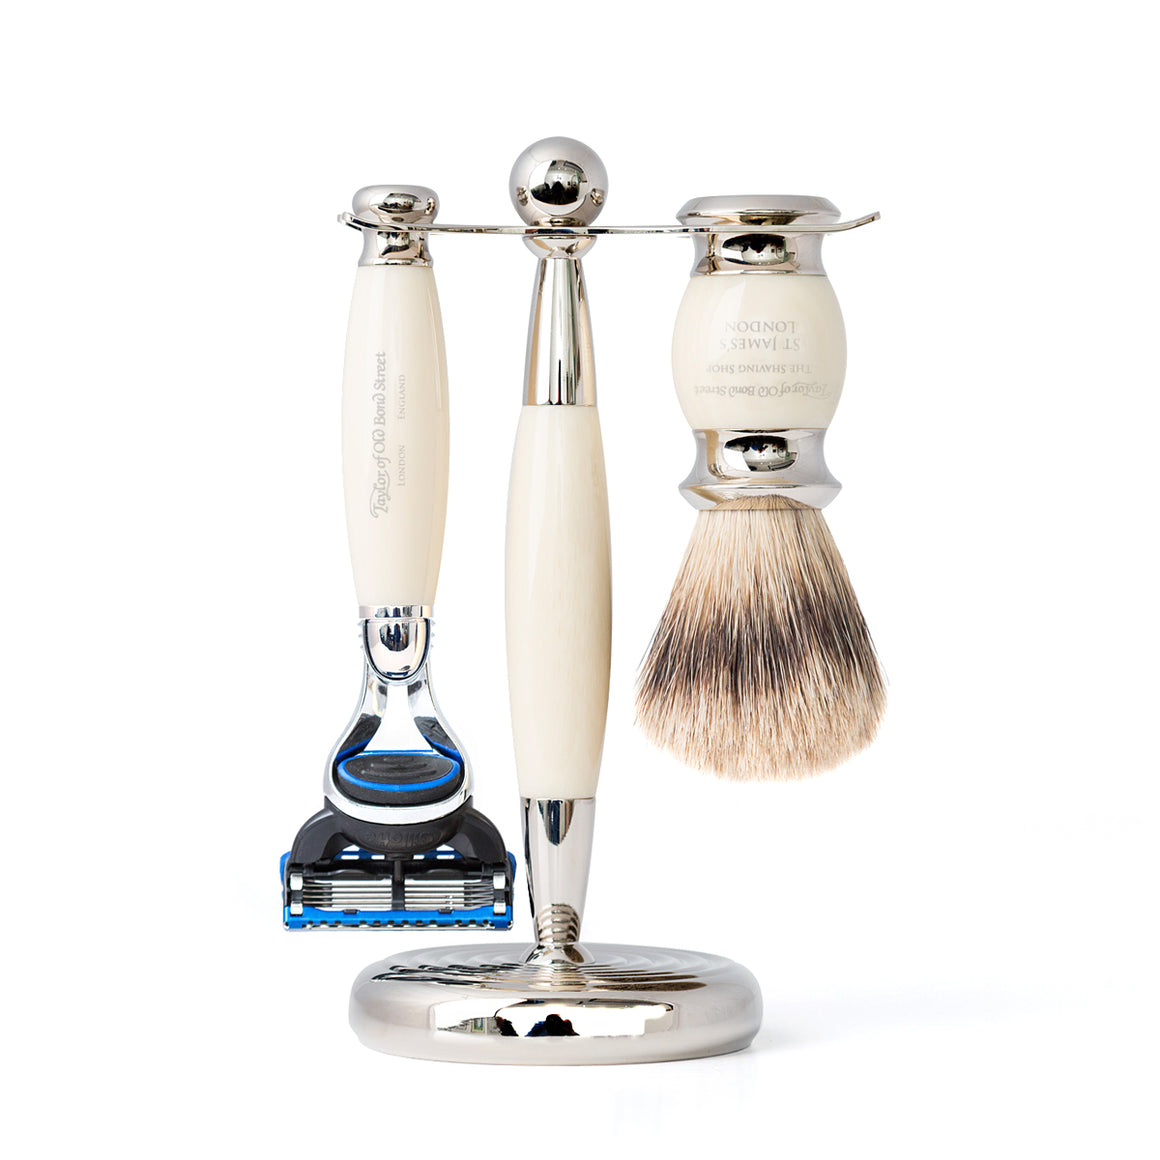 Taylor of Old Bond Street Super Fusion Edwardian Shaving Set in Black